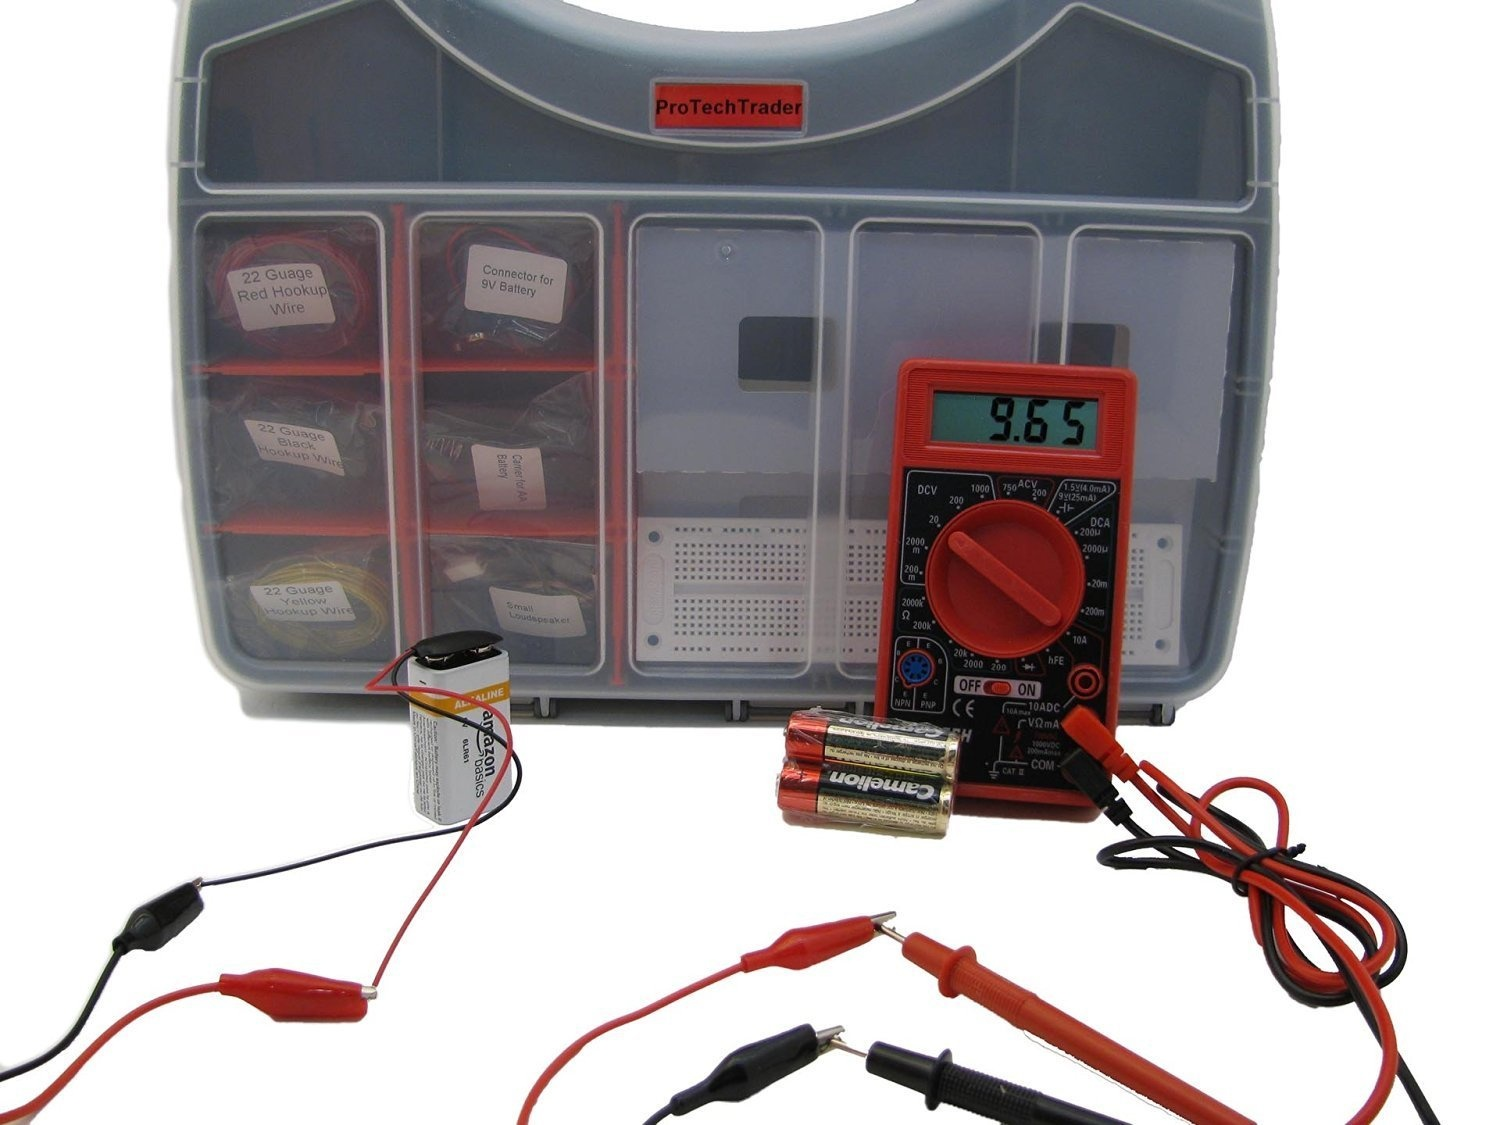 Which Is The Best Electronics Kit For A Beginner To Get Knowledge Building Wiring Books Charles Platt Author Of This Series Sold Separately From Titled Make Book Has Been 1 Seller On